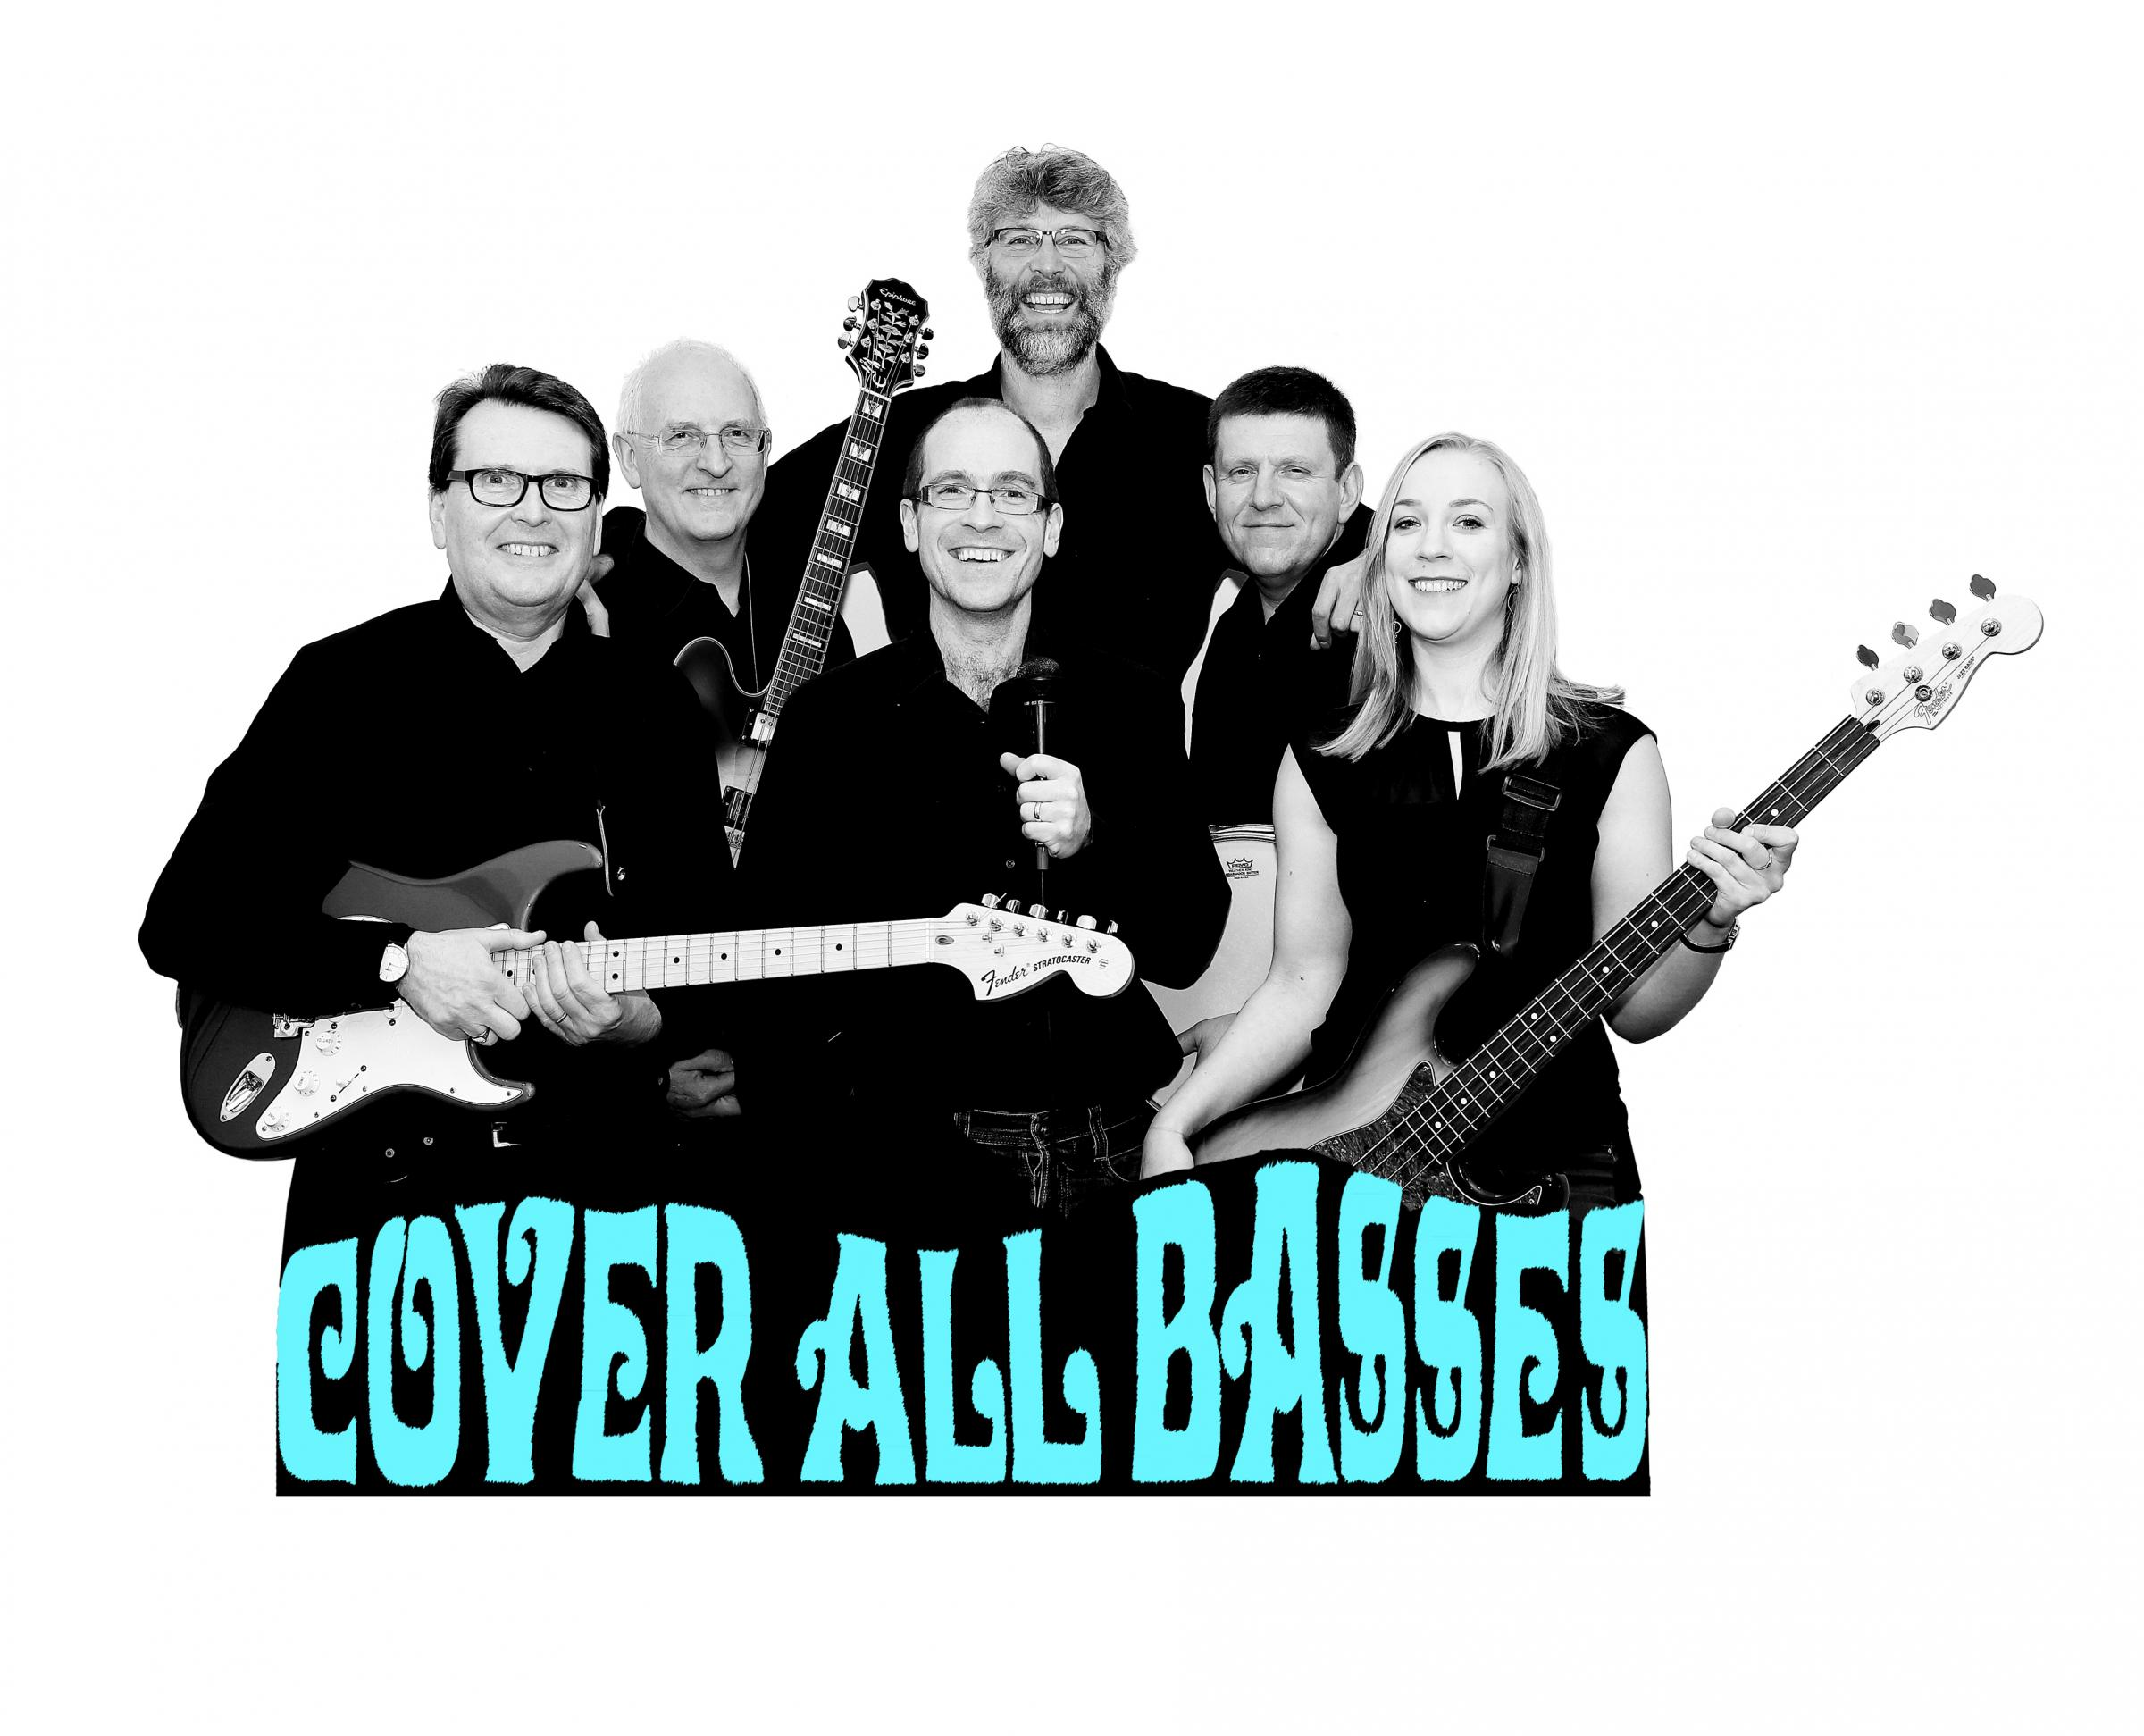 Cover All Basses